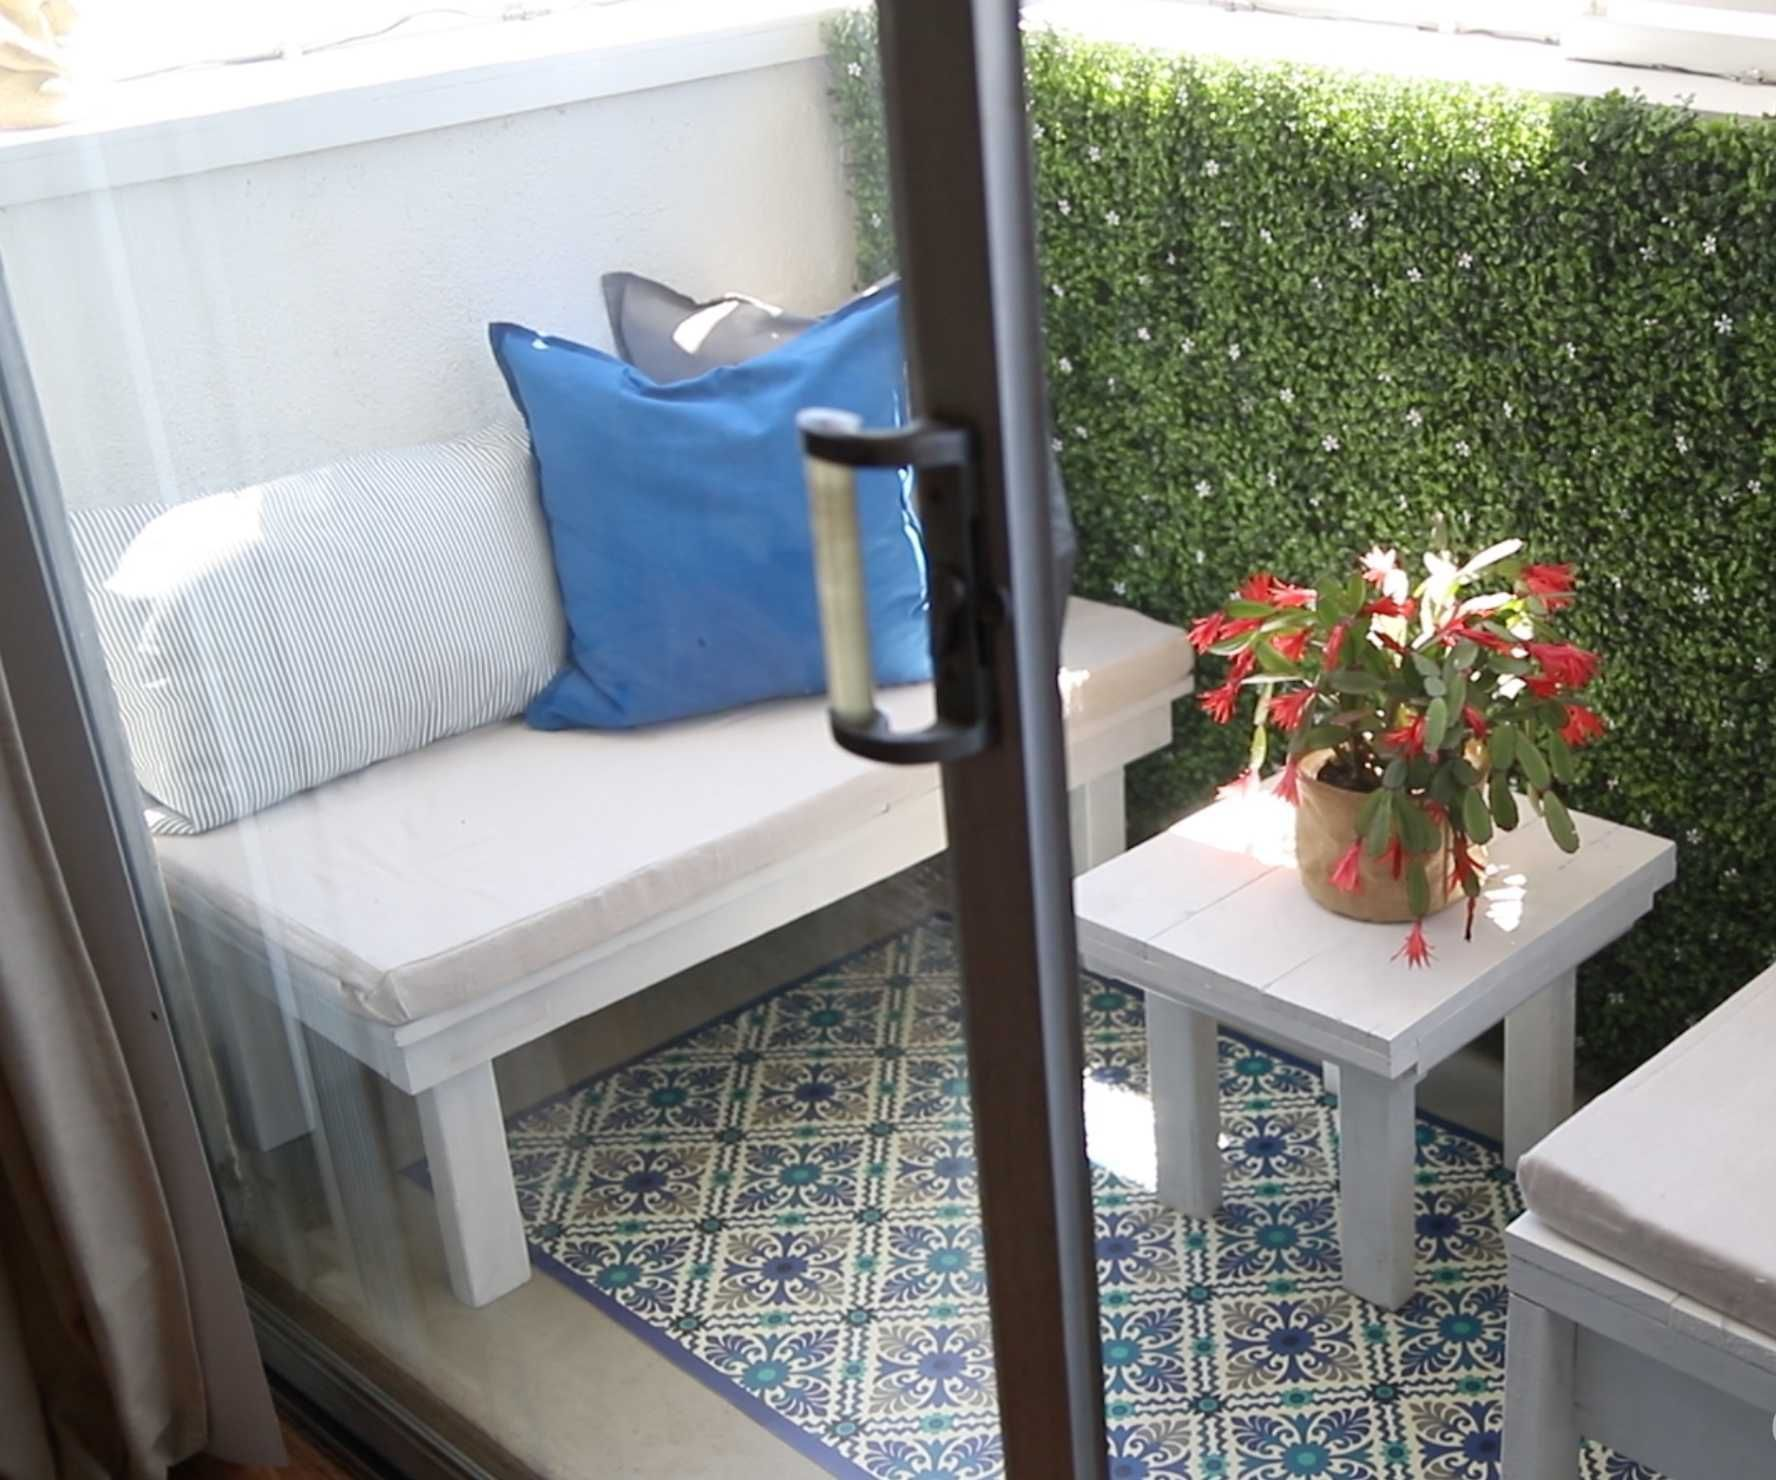 Recycling Scraps to Make Outdoor Furniture